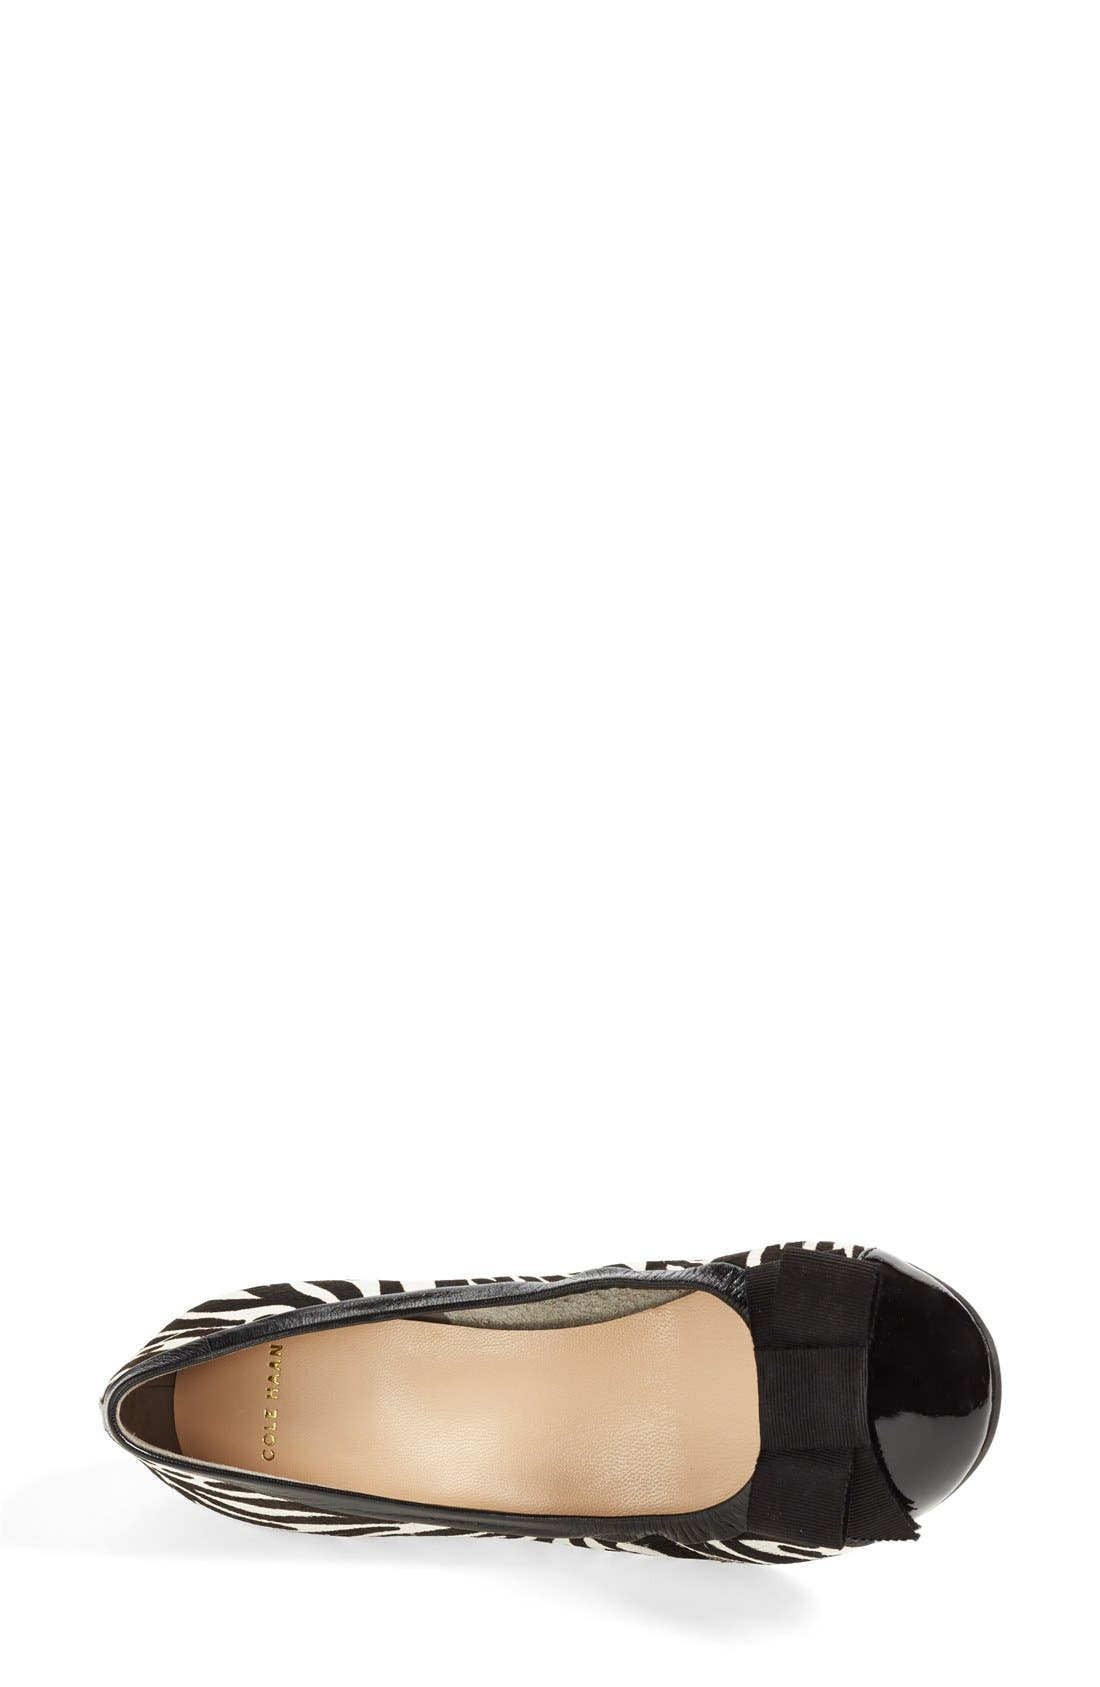 Alternate Image 3  - Cole Haan 'Air Tali' Wedge Pump (Women)